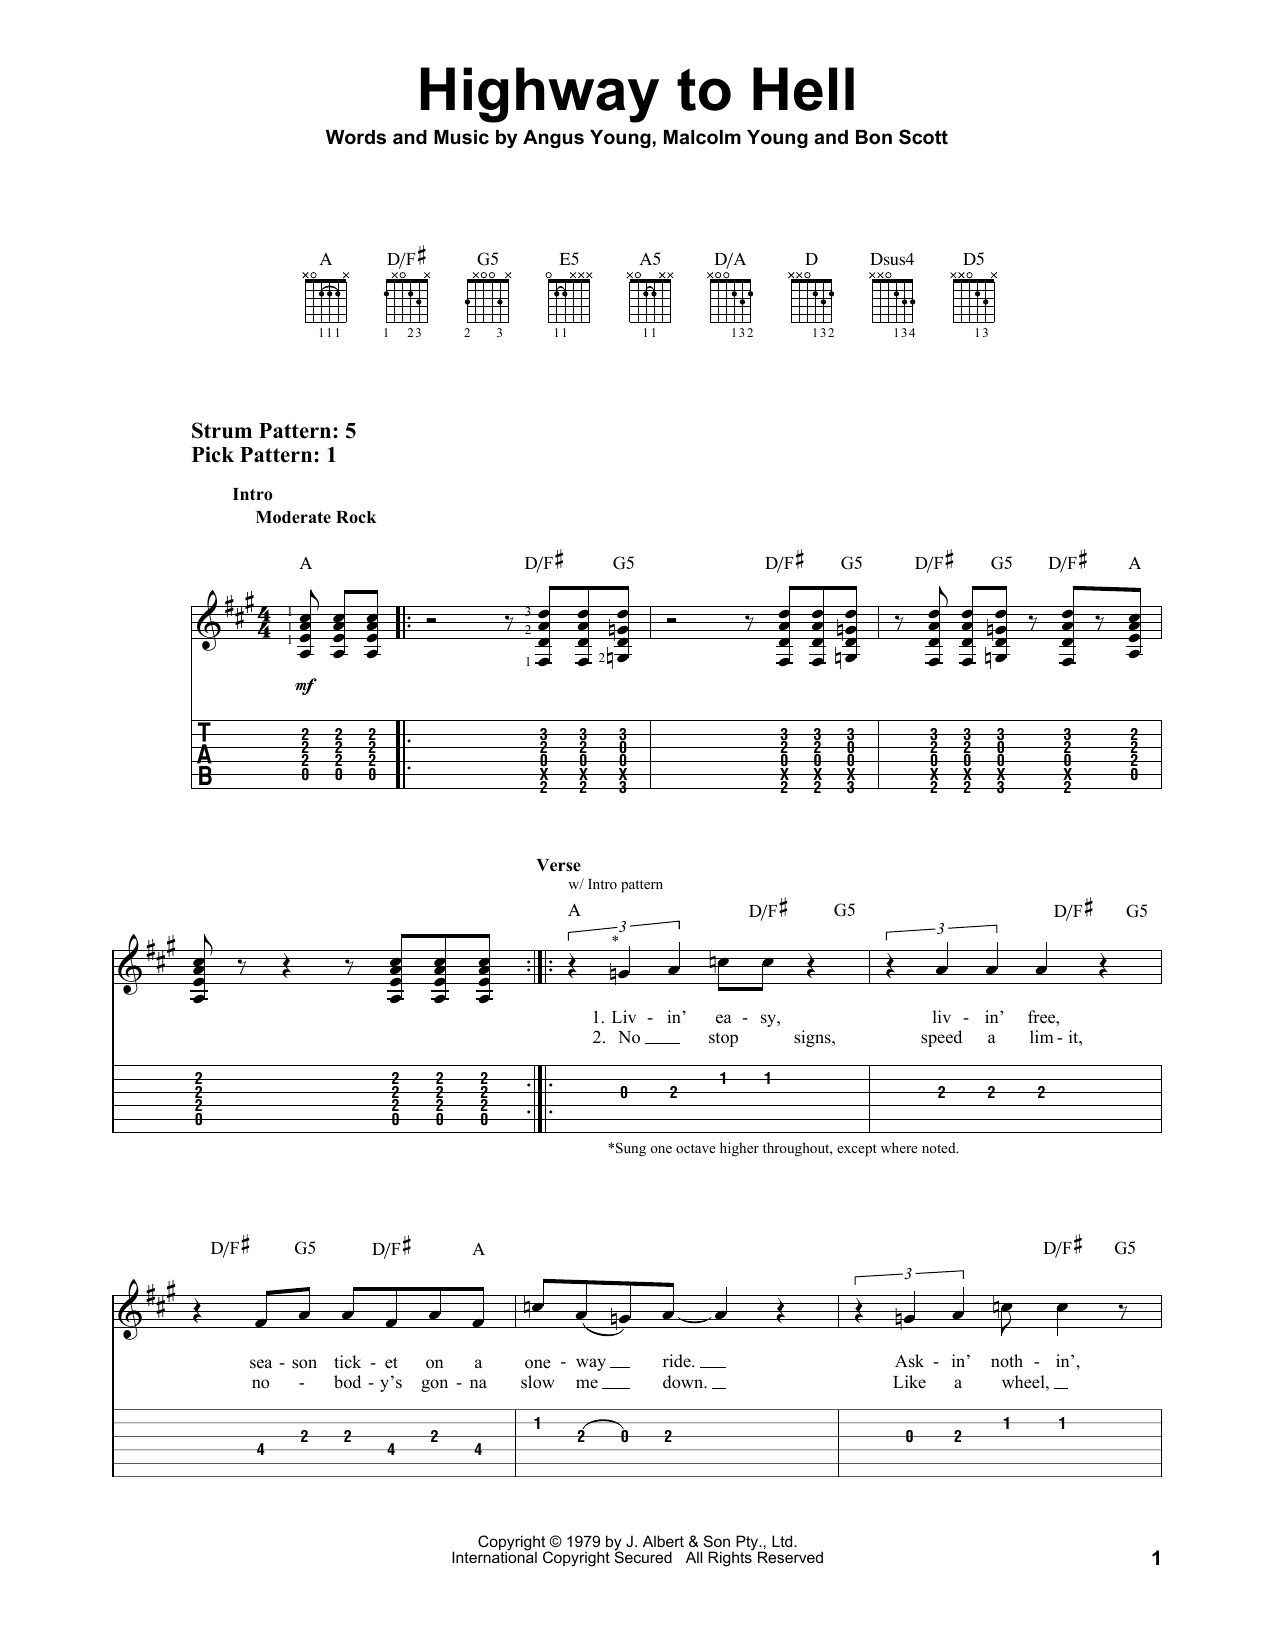 Acdc Highway To Hell Tab Music Pinterest Guitars Tablature